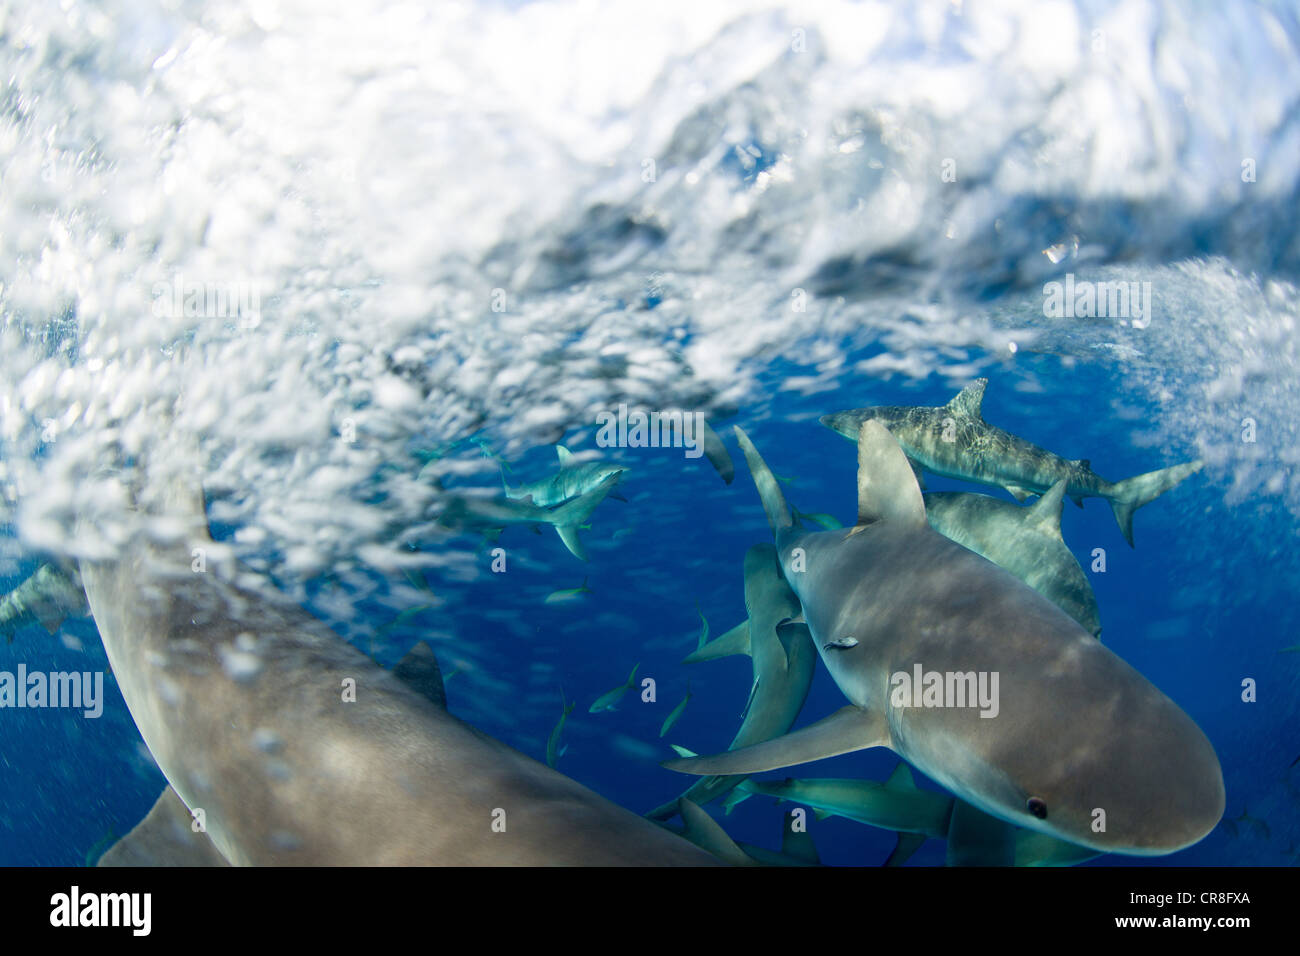 Frenzy of Caribbean Reef Sharks - Stock Image